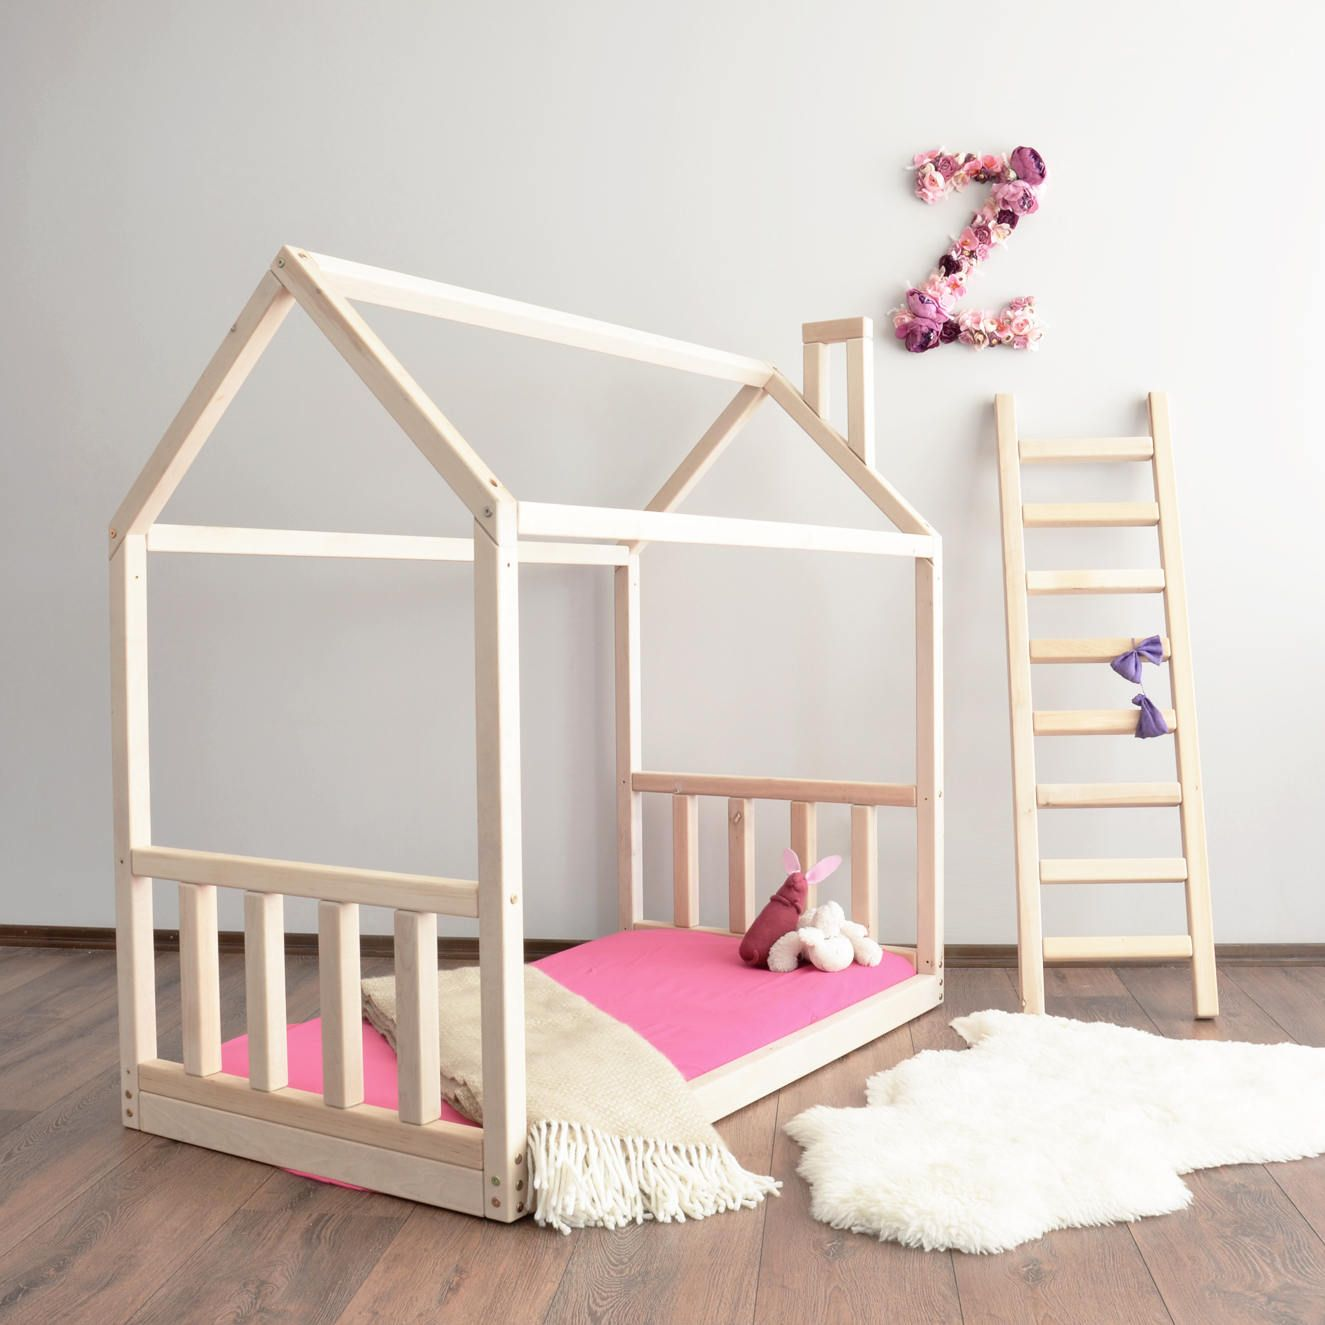 House Bed Frame Toddler Montessori Baby Crib Size Modern Unique